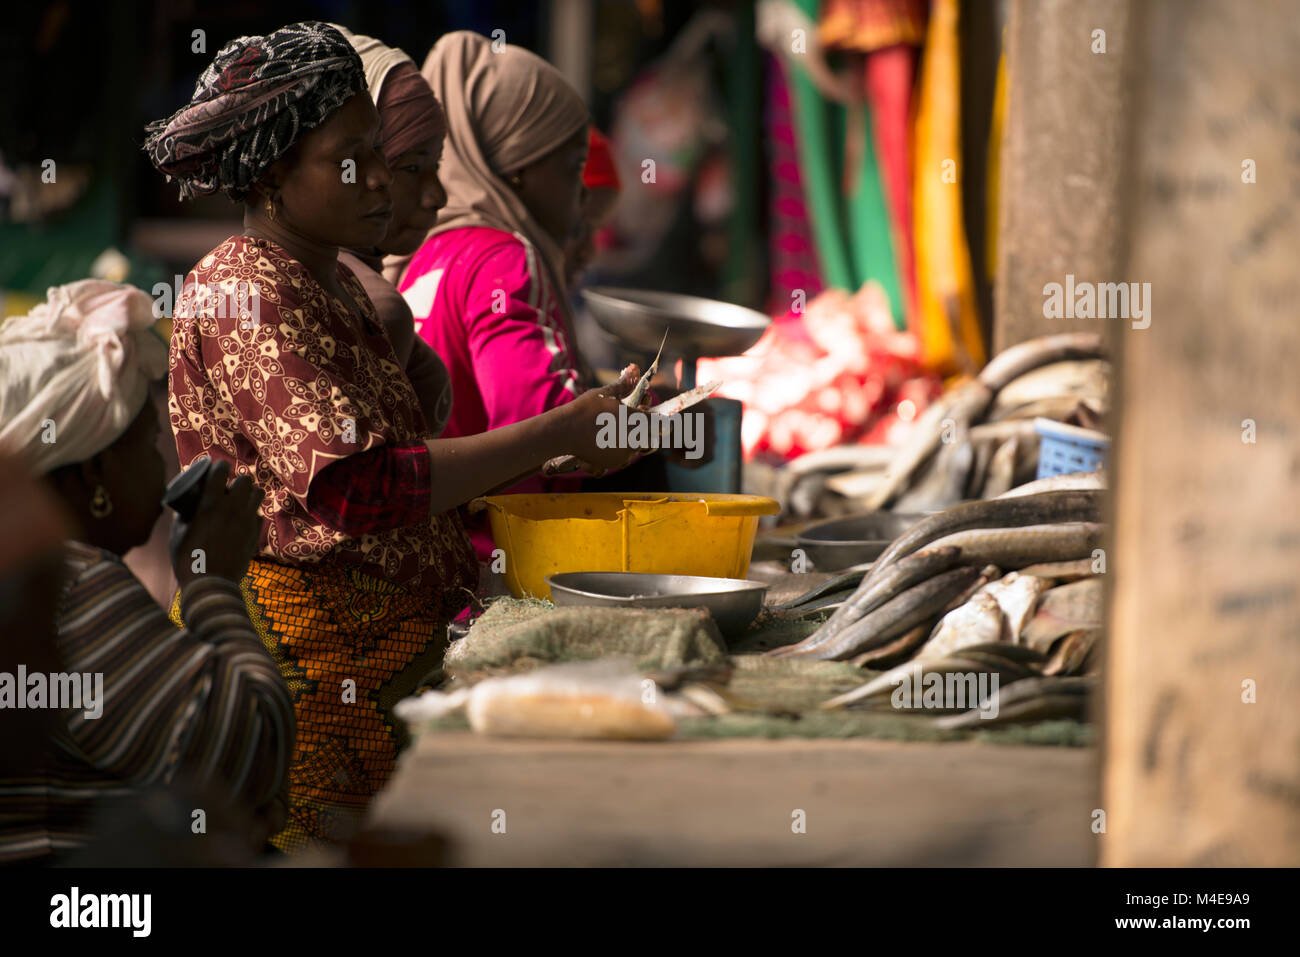 An indigenous Jola woman skins fish at a local market in Senegal, West Africa. - Stock Image